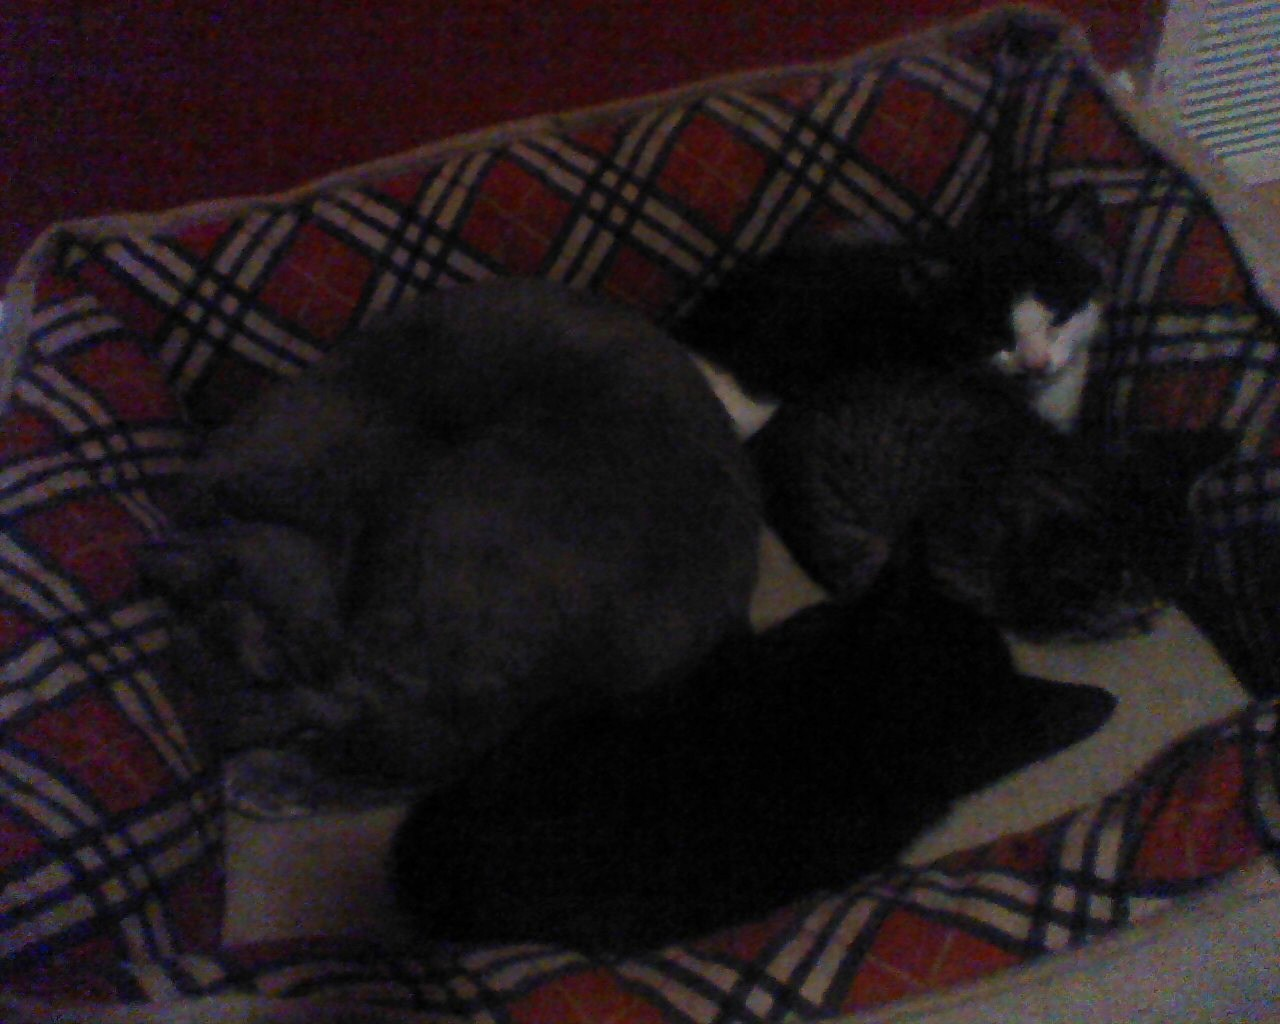 Shadow Sleeping With The Kittens 3